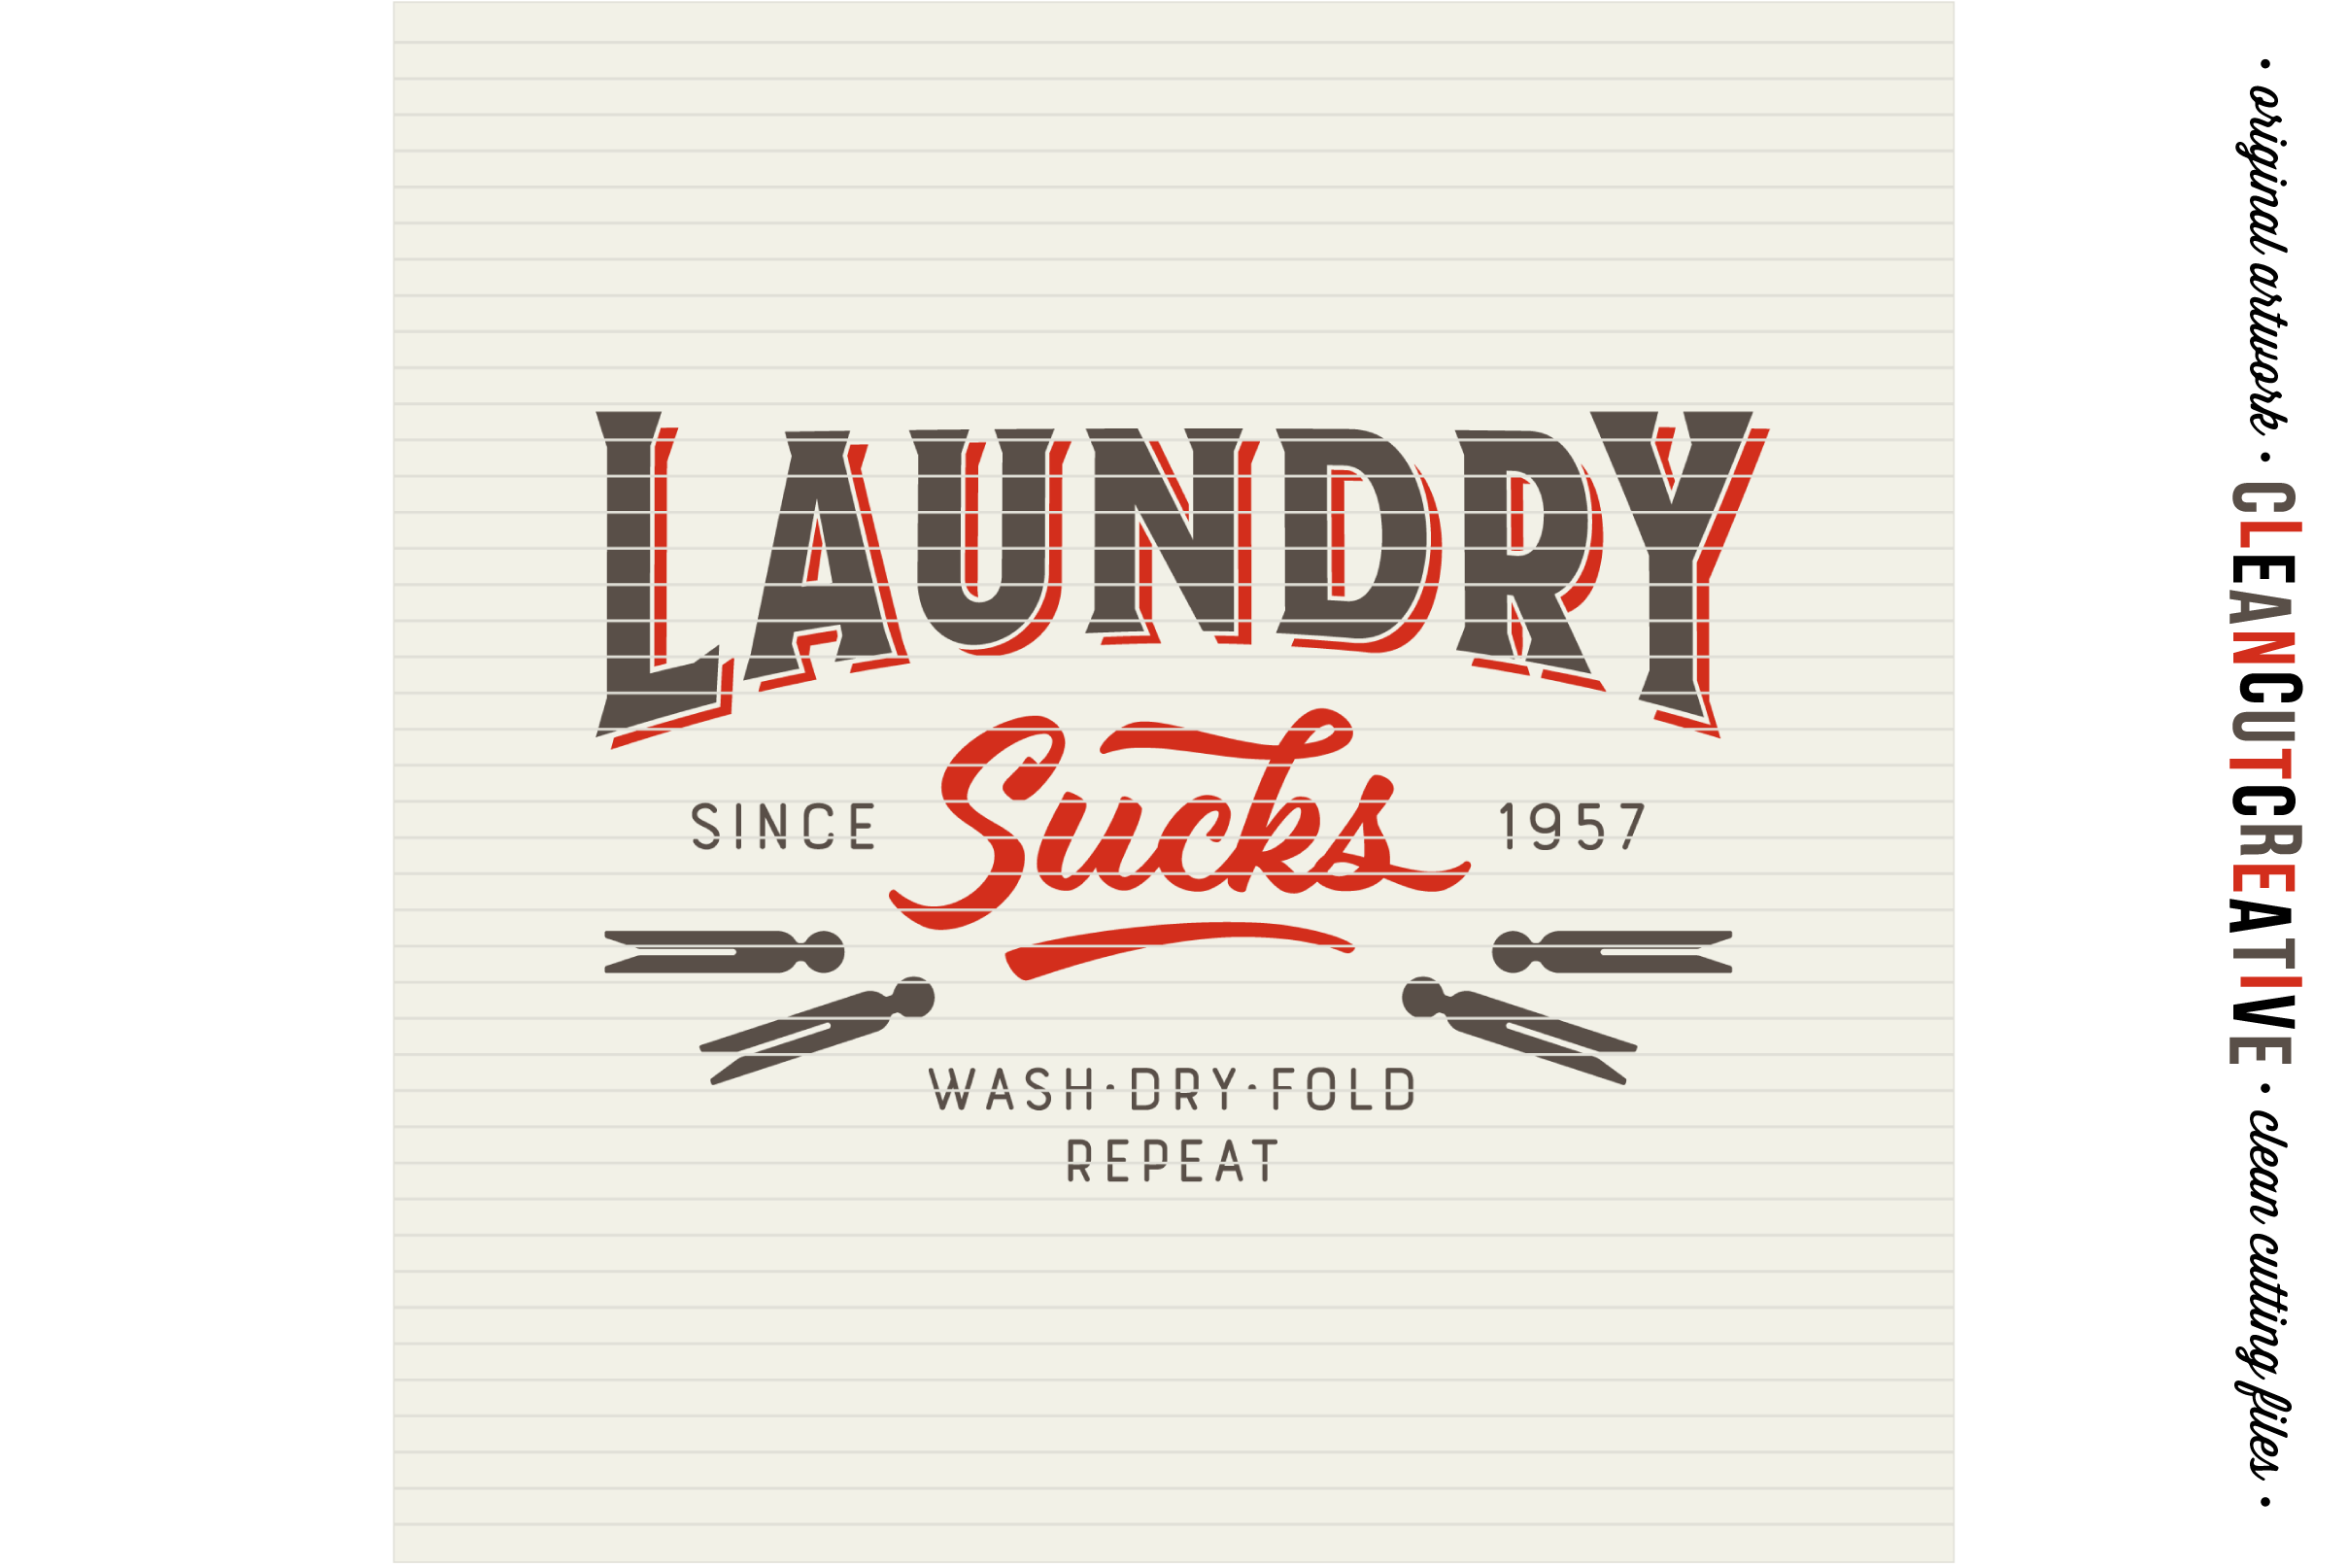 Laundry sucks svg dxf eps png cricut silhouette for Kmz to dxf